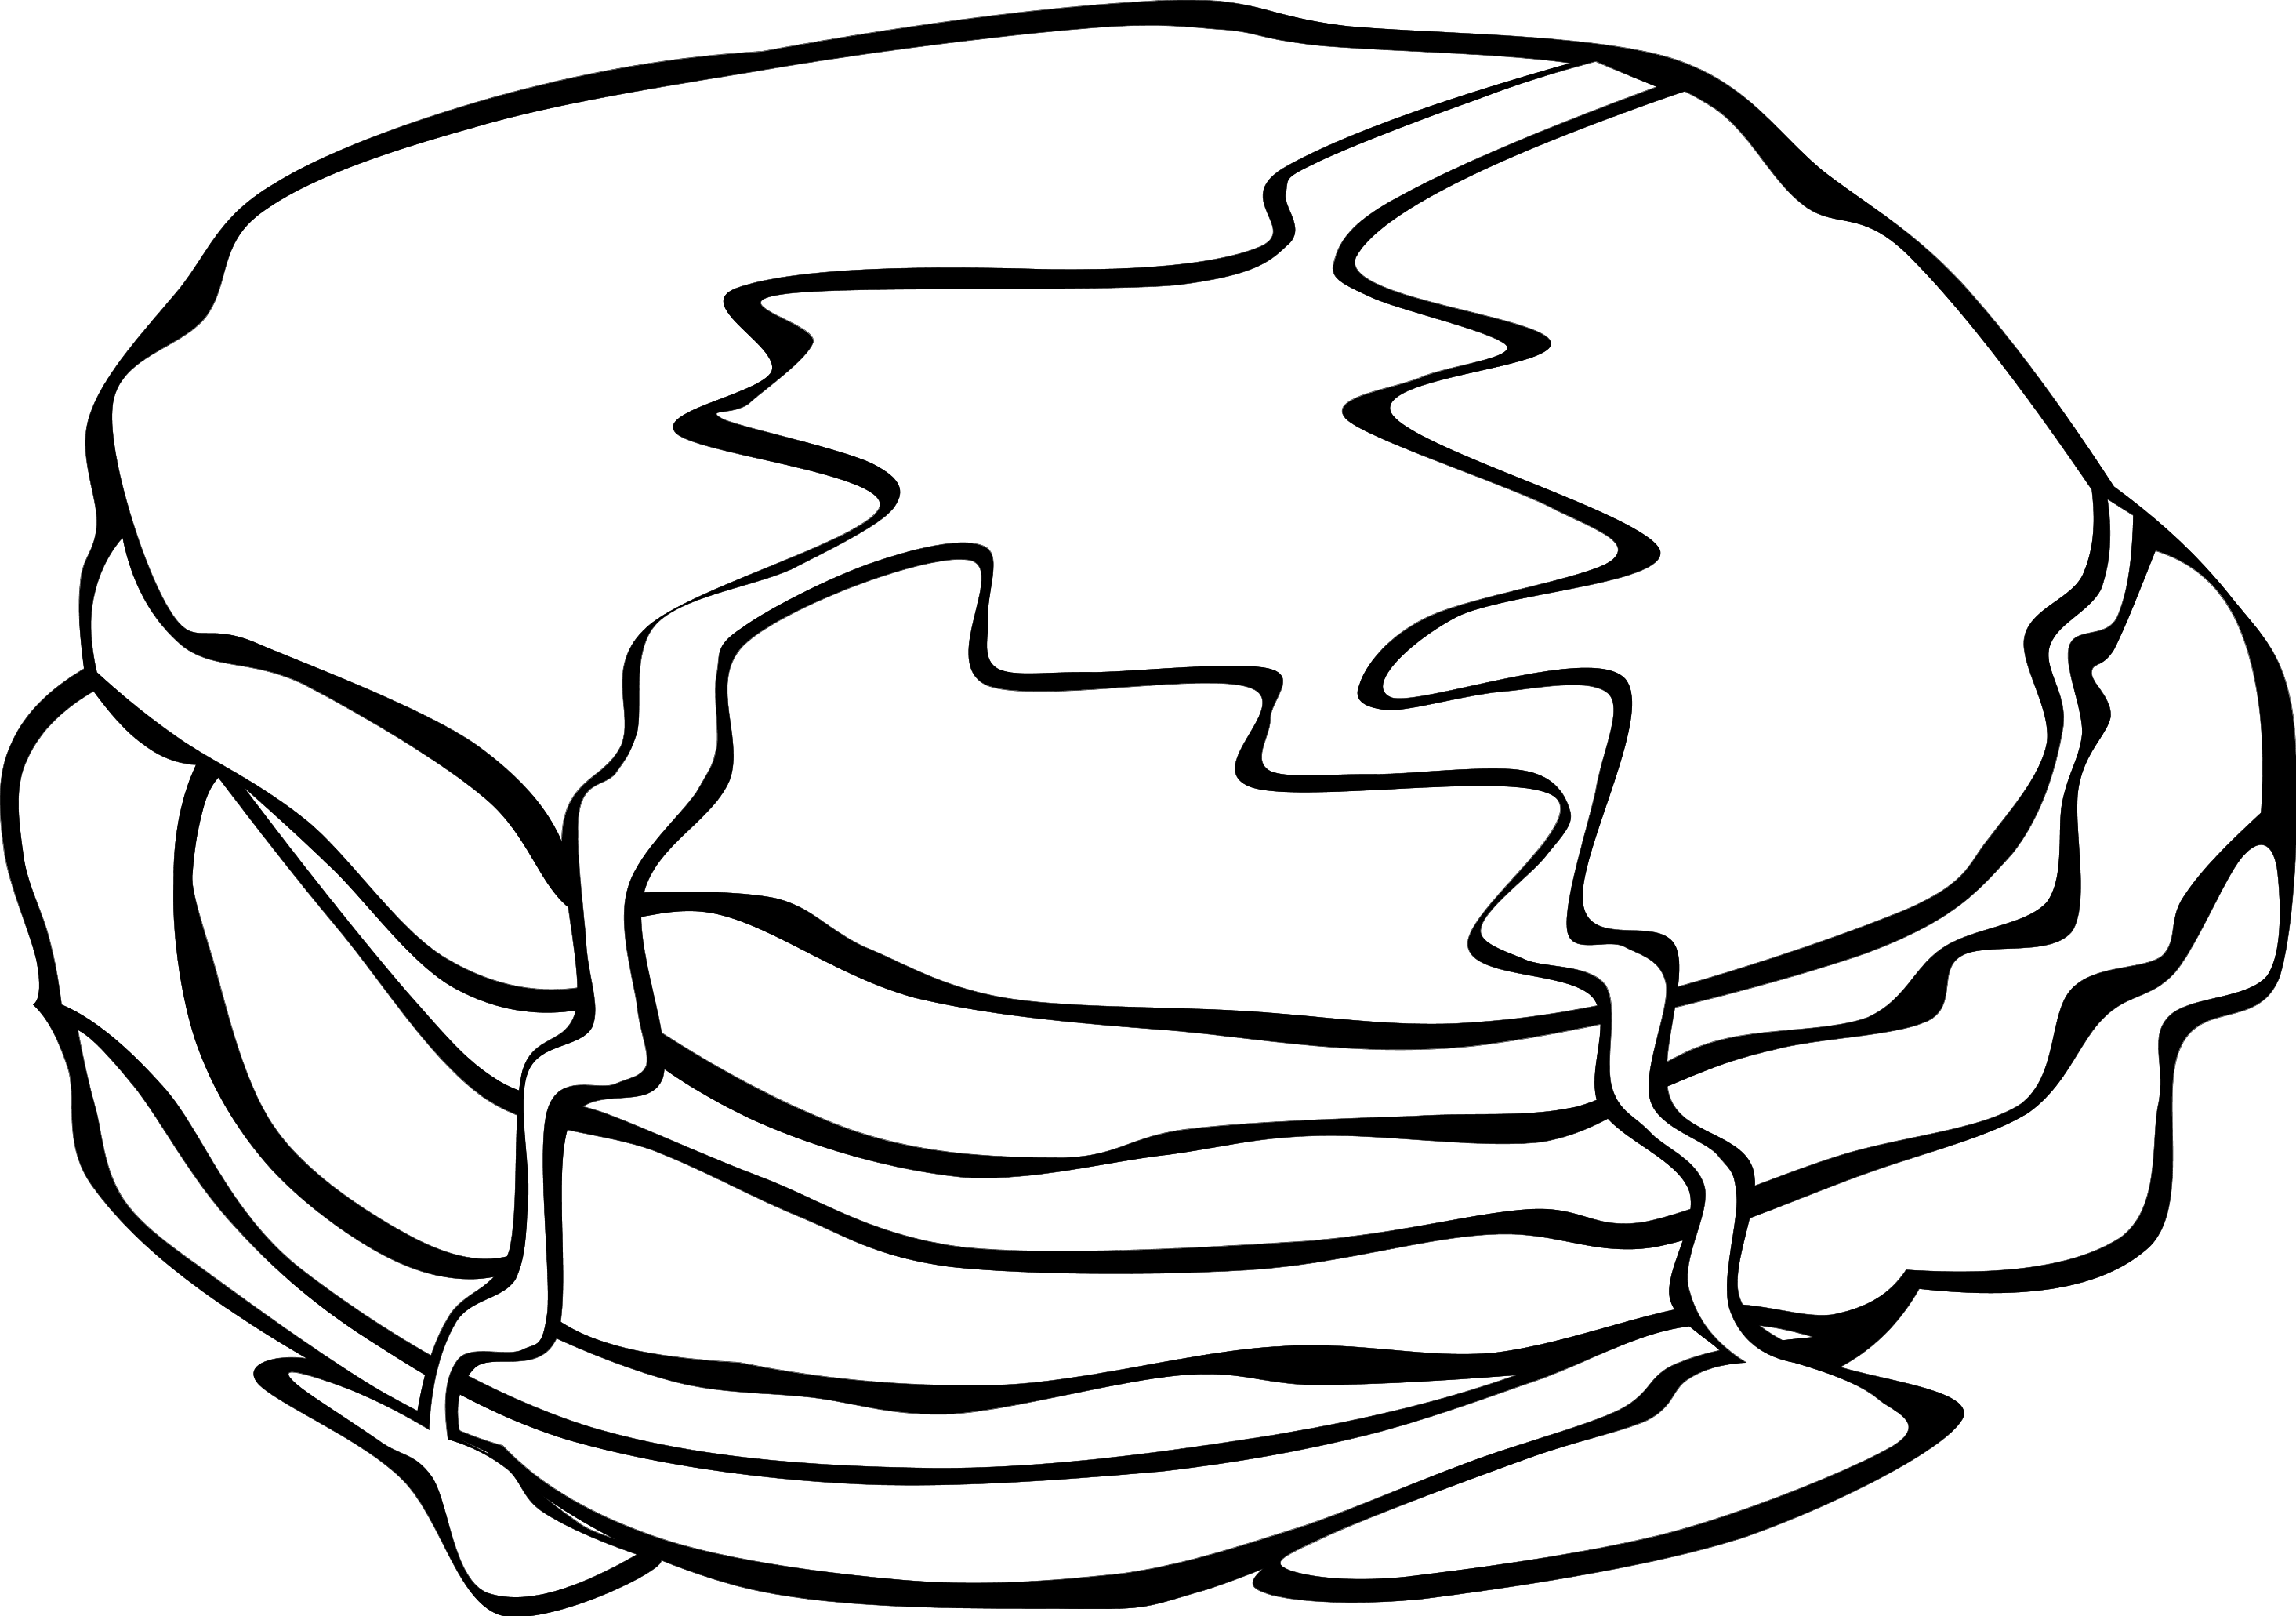 Free Pancake Clipart Black And White, Download Free Clip Art.